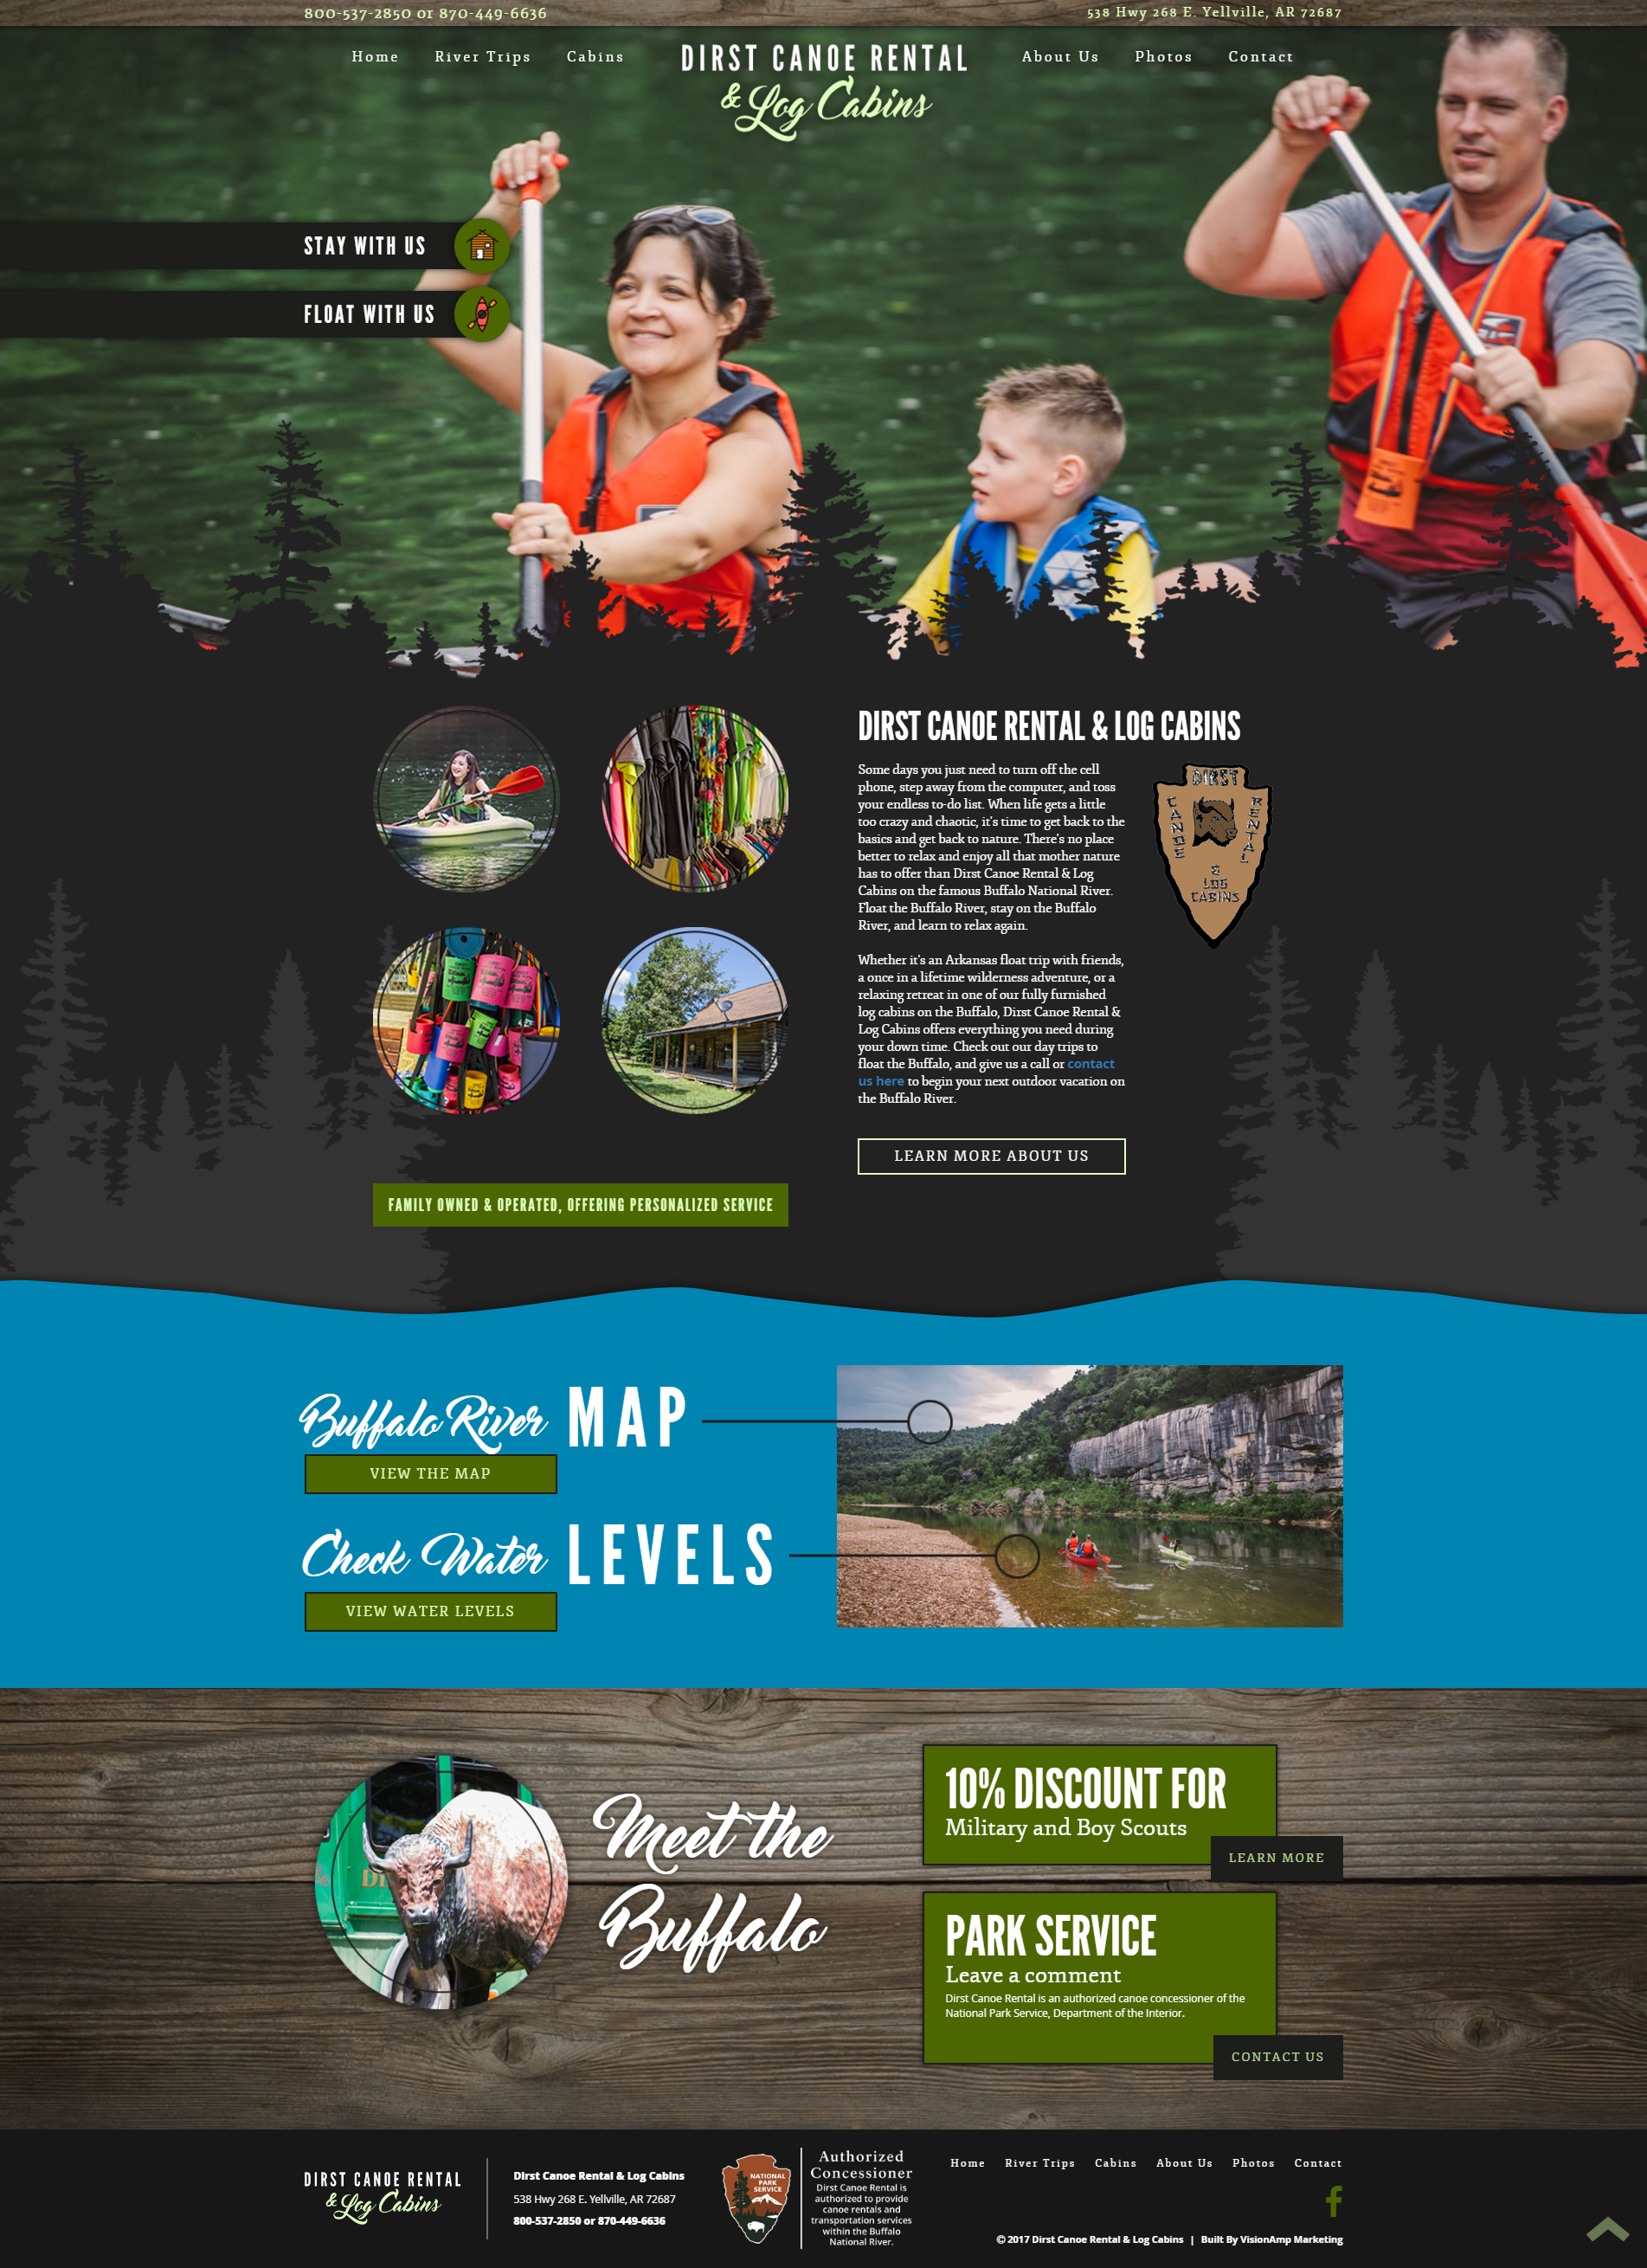 Dirst Canoe Rental Full Web Design Image